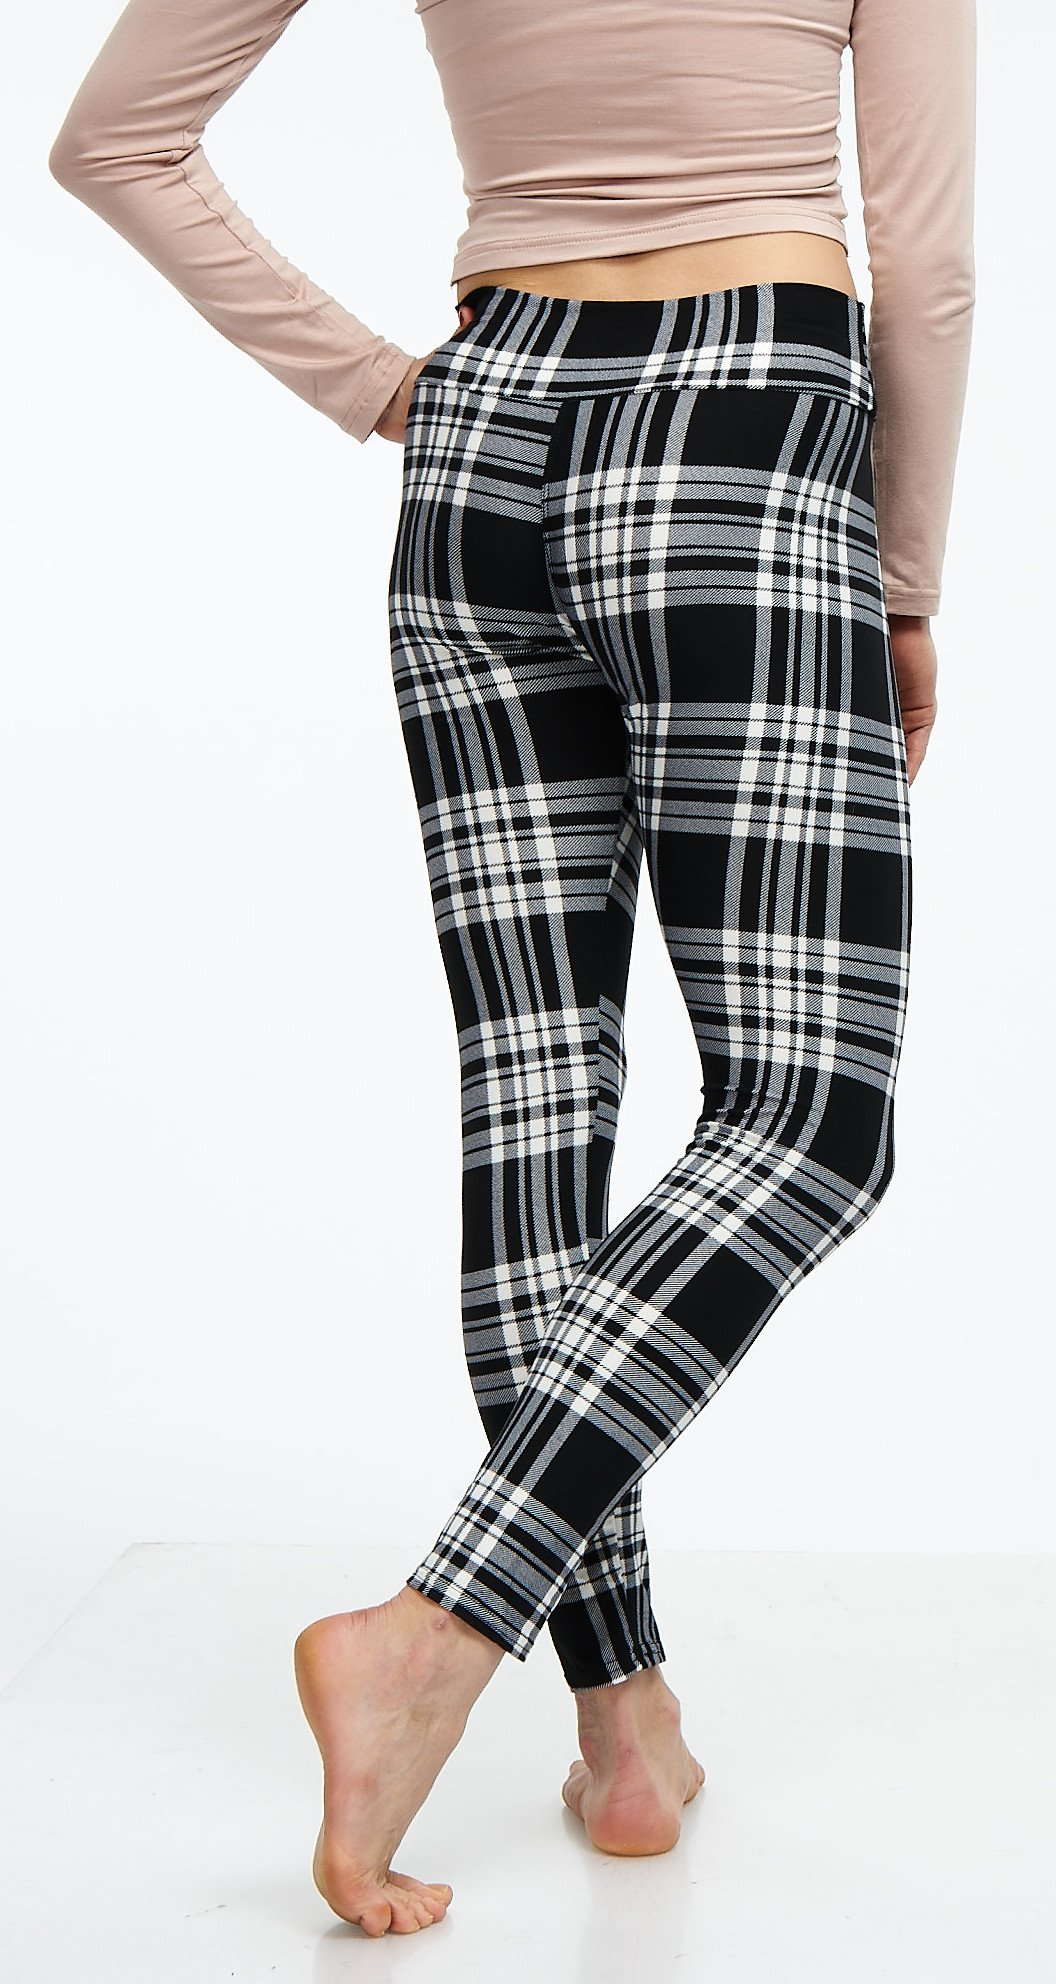 LMB Lush Moda Extra Soft Leggings with Designs- Variety of Prints Yoga Waist - 769YF Black White Plaid B5 by LMB (Image #8)